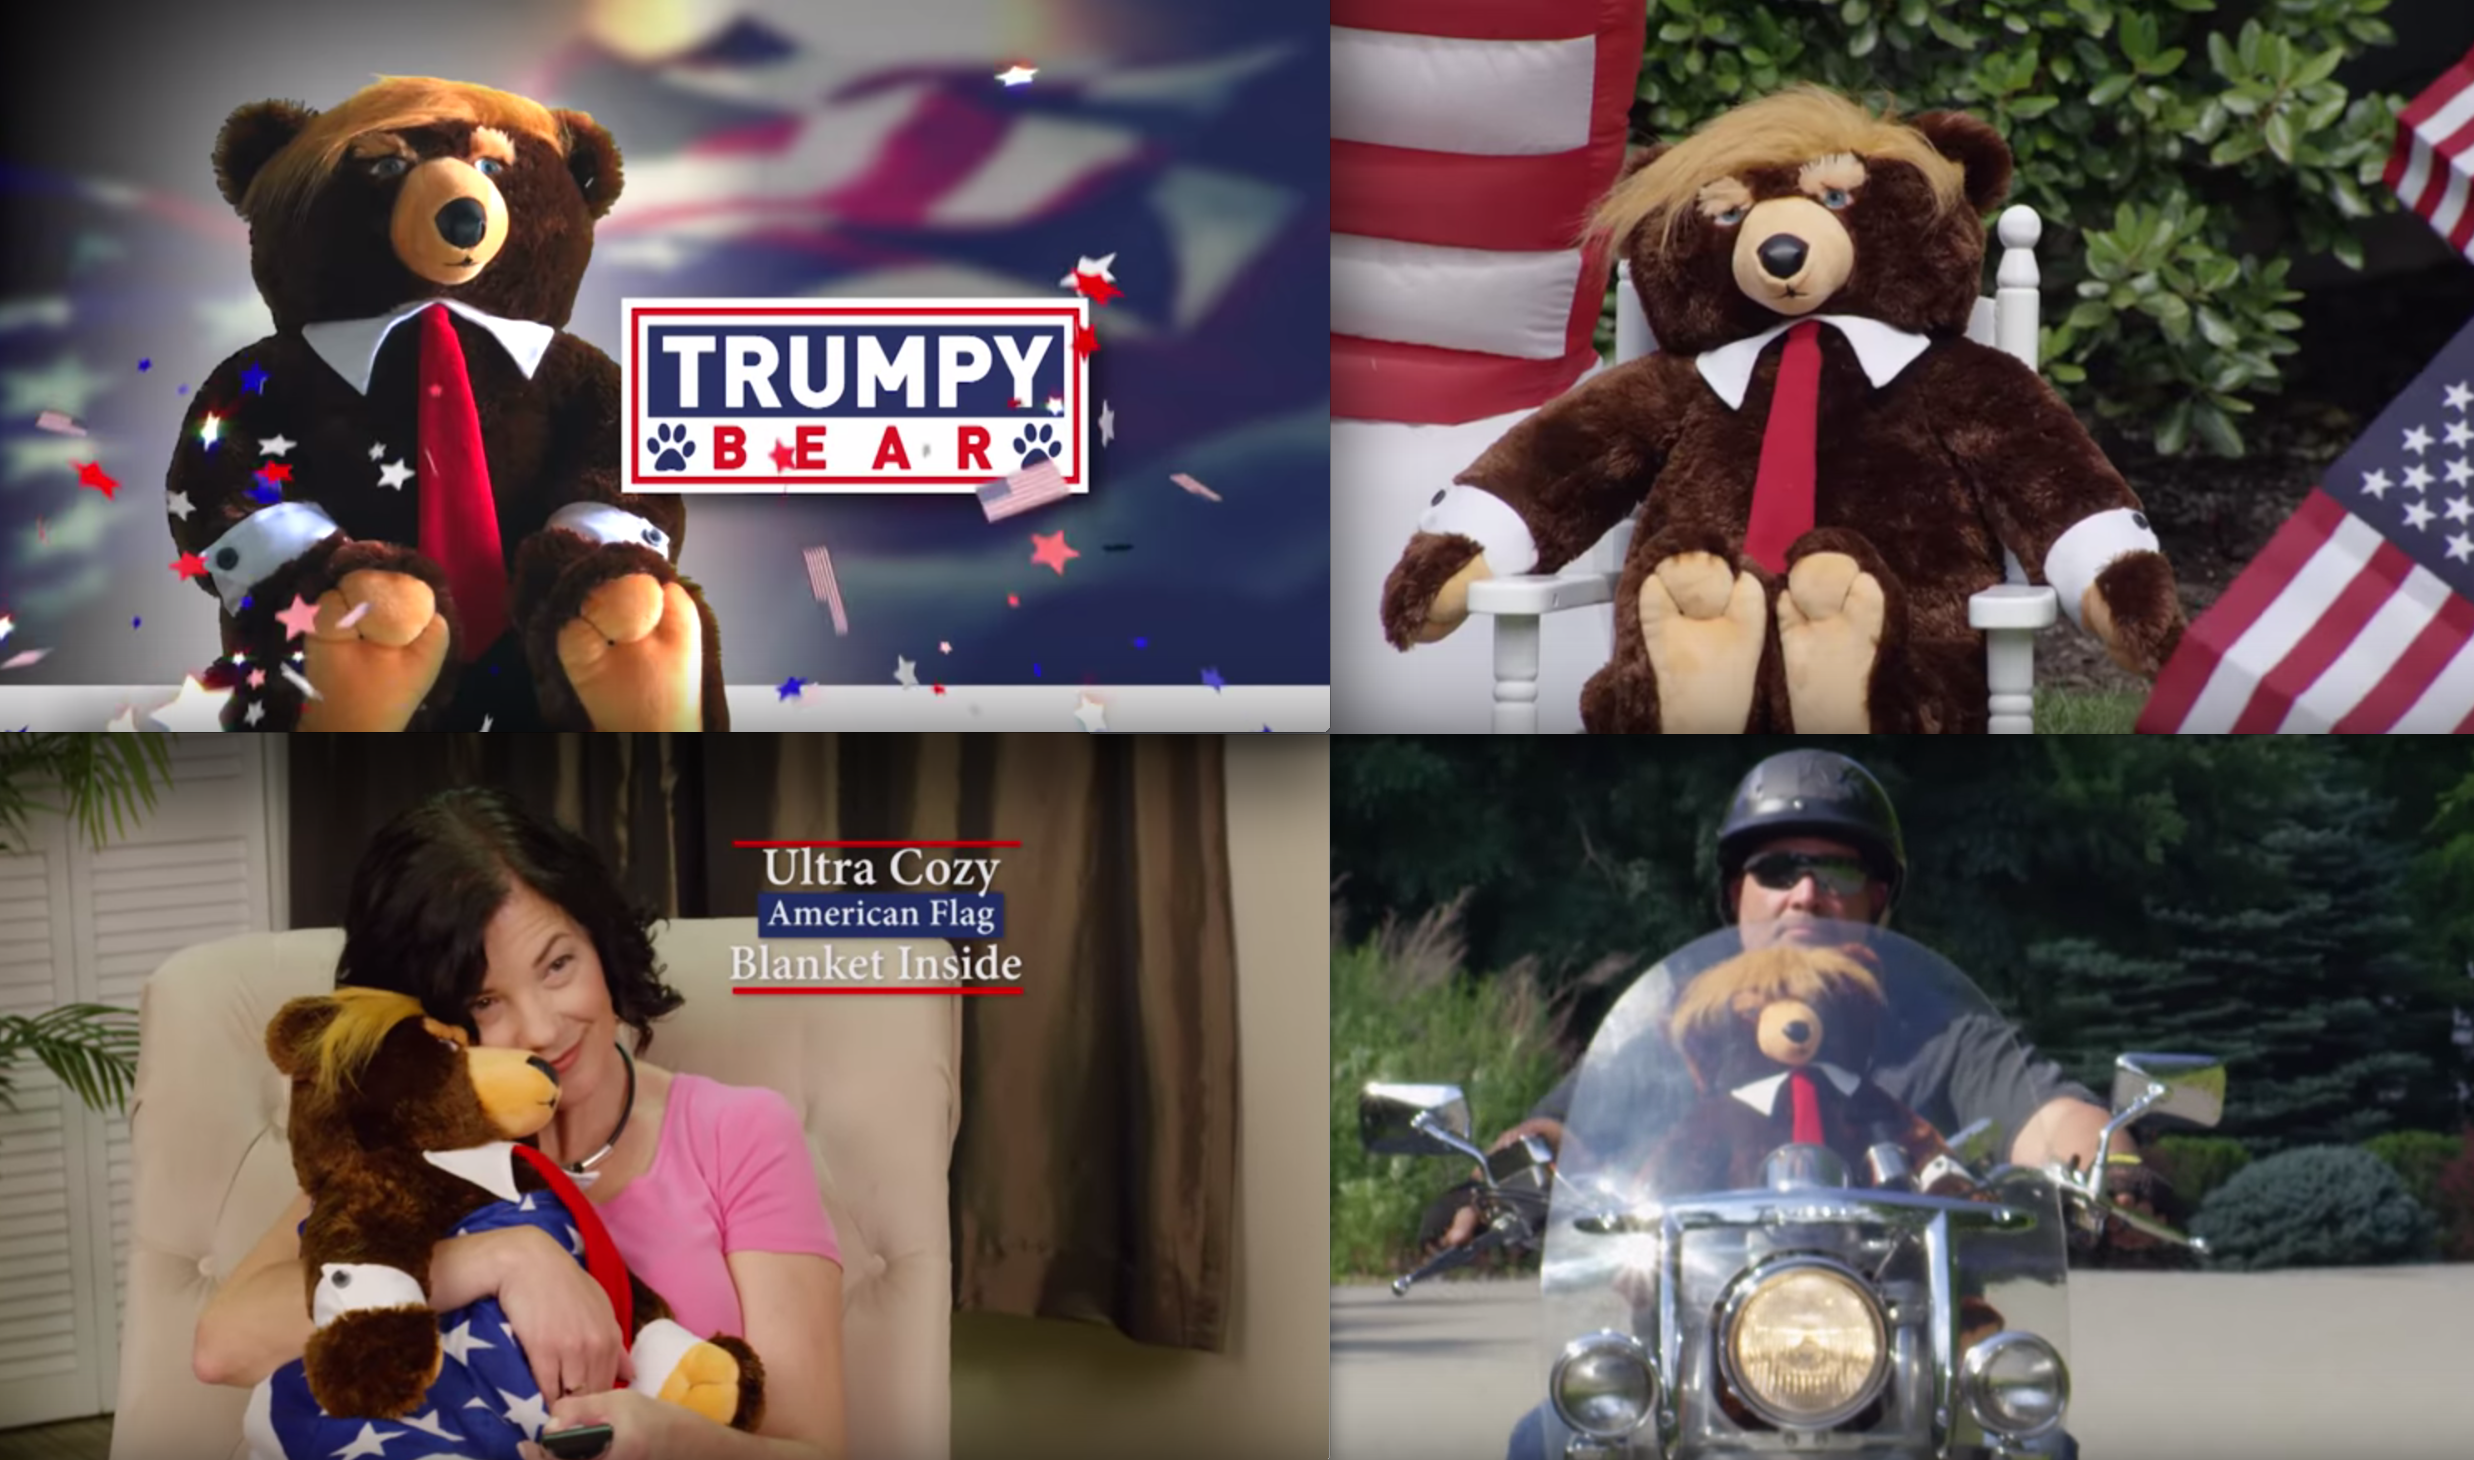 Side-Splitting Video: Infomercial Hits Primetime TV: Meet 'Trumpy Bear' (Yes This is Real News)